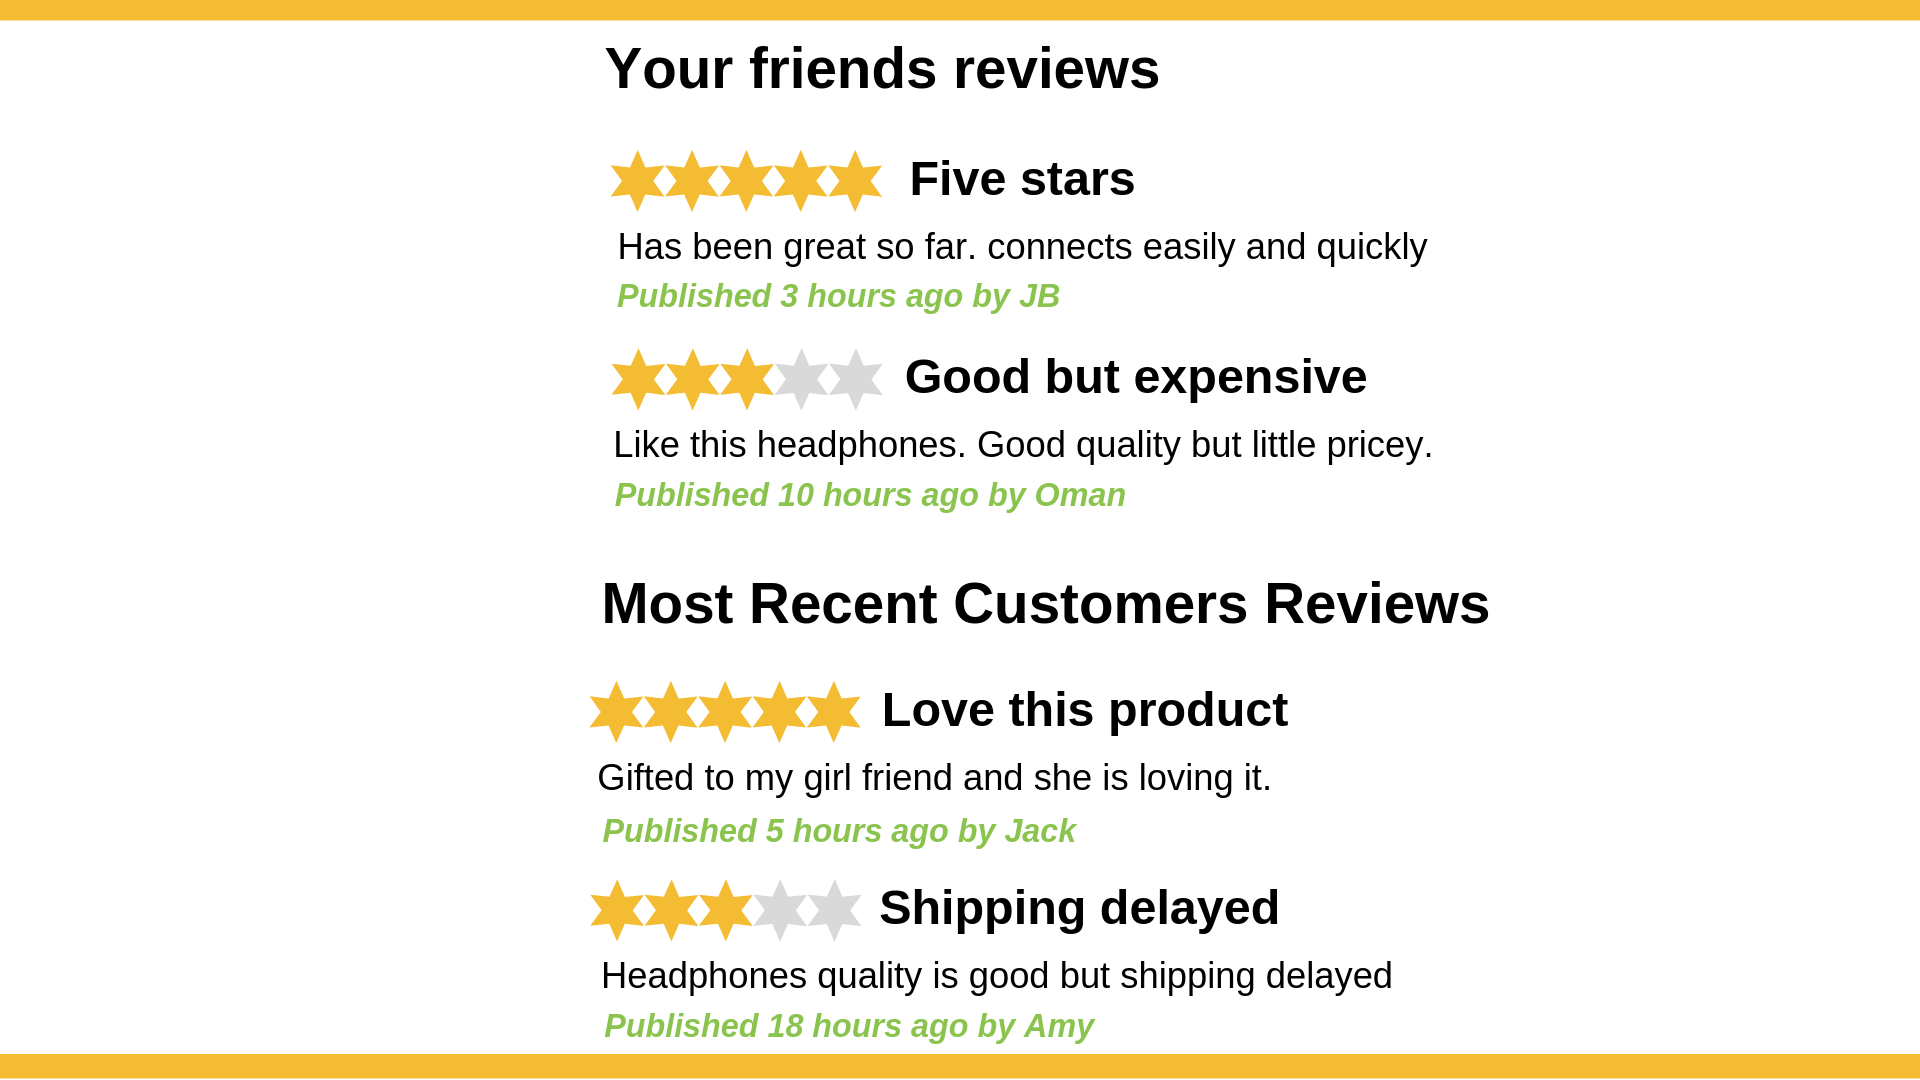 Friends reviews on top is New in eCommerce